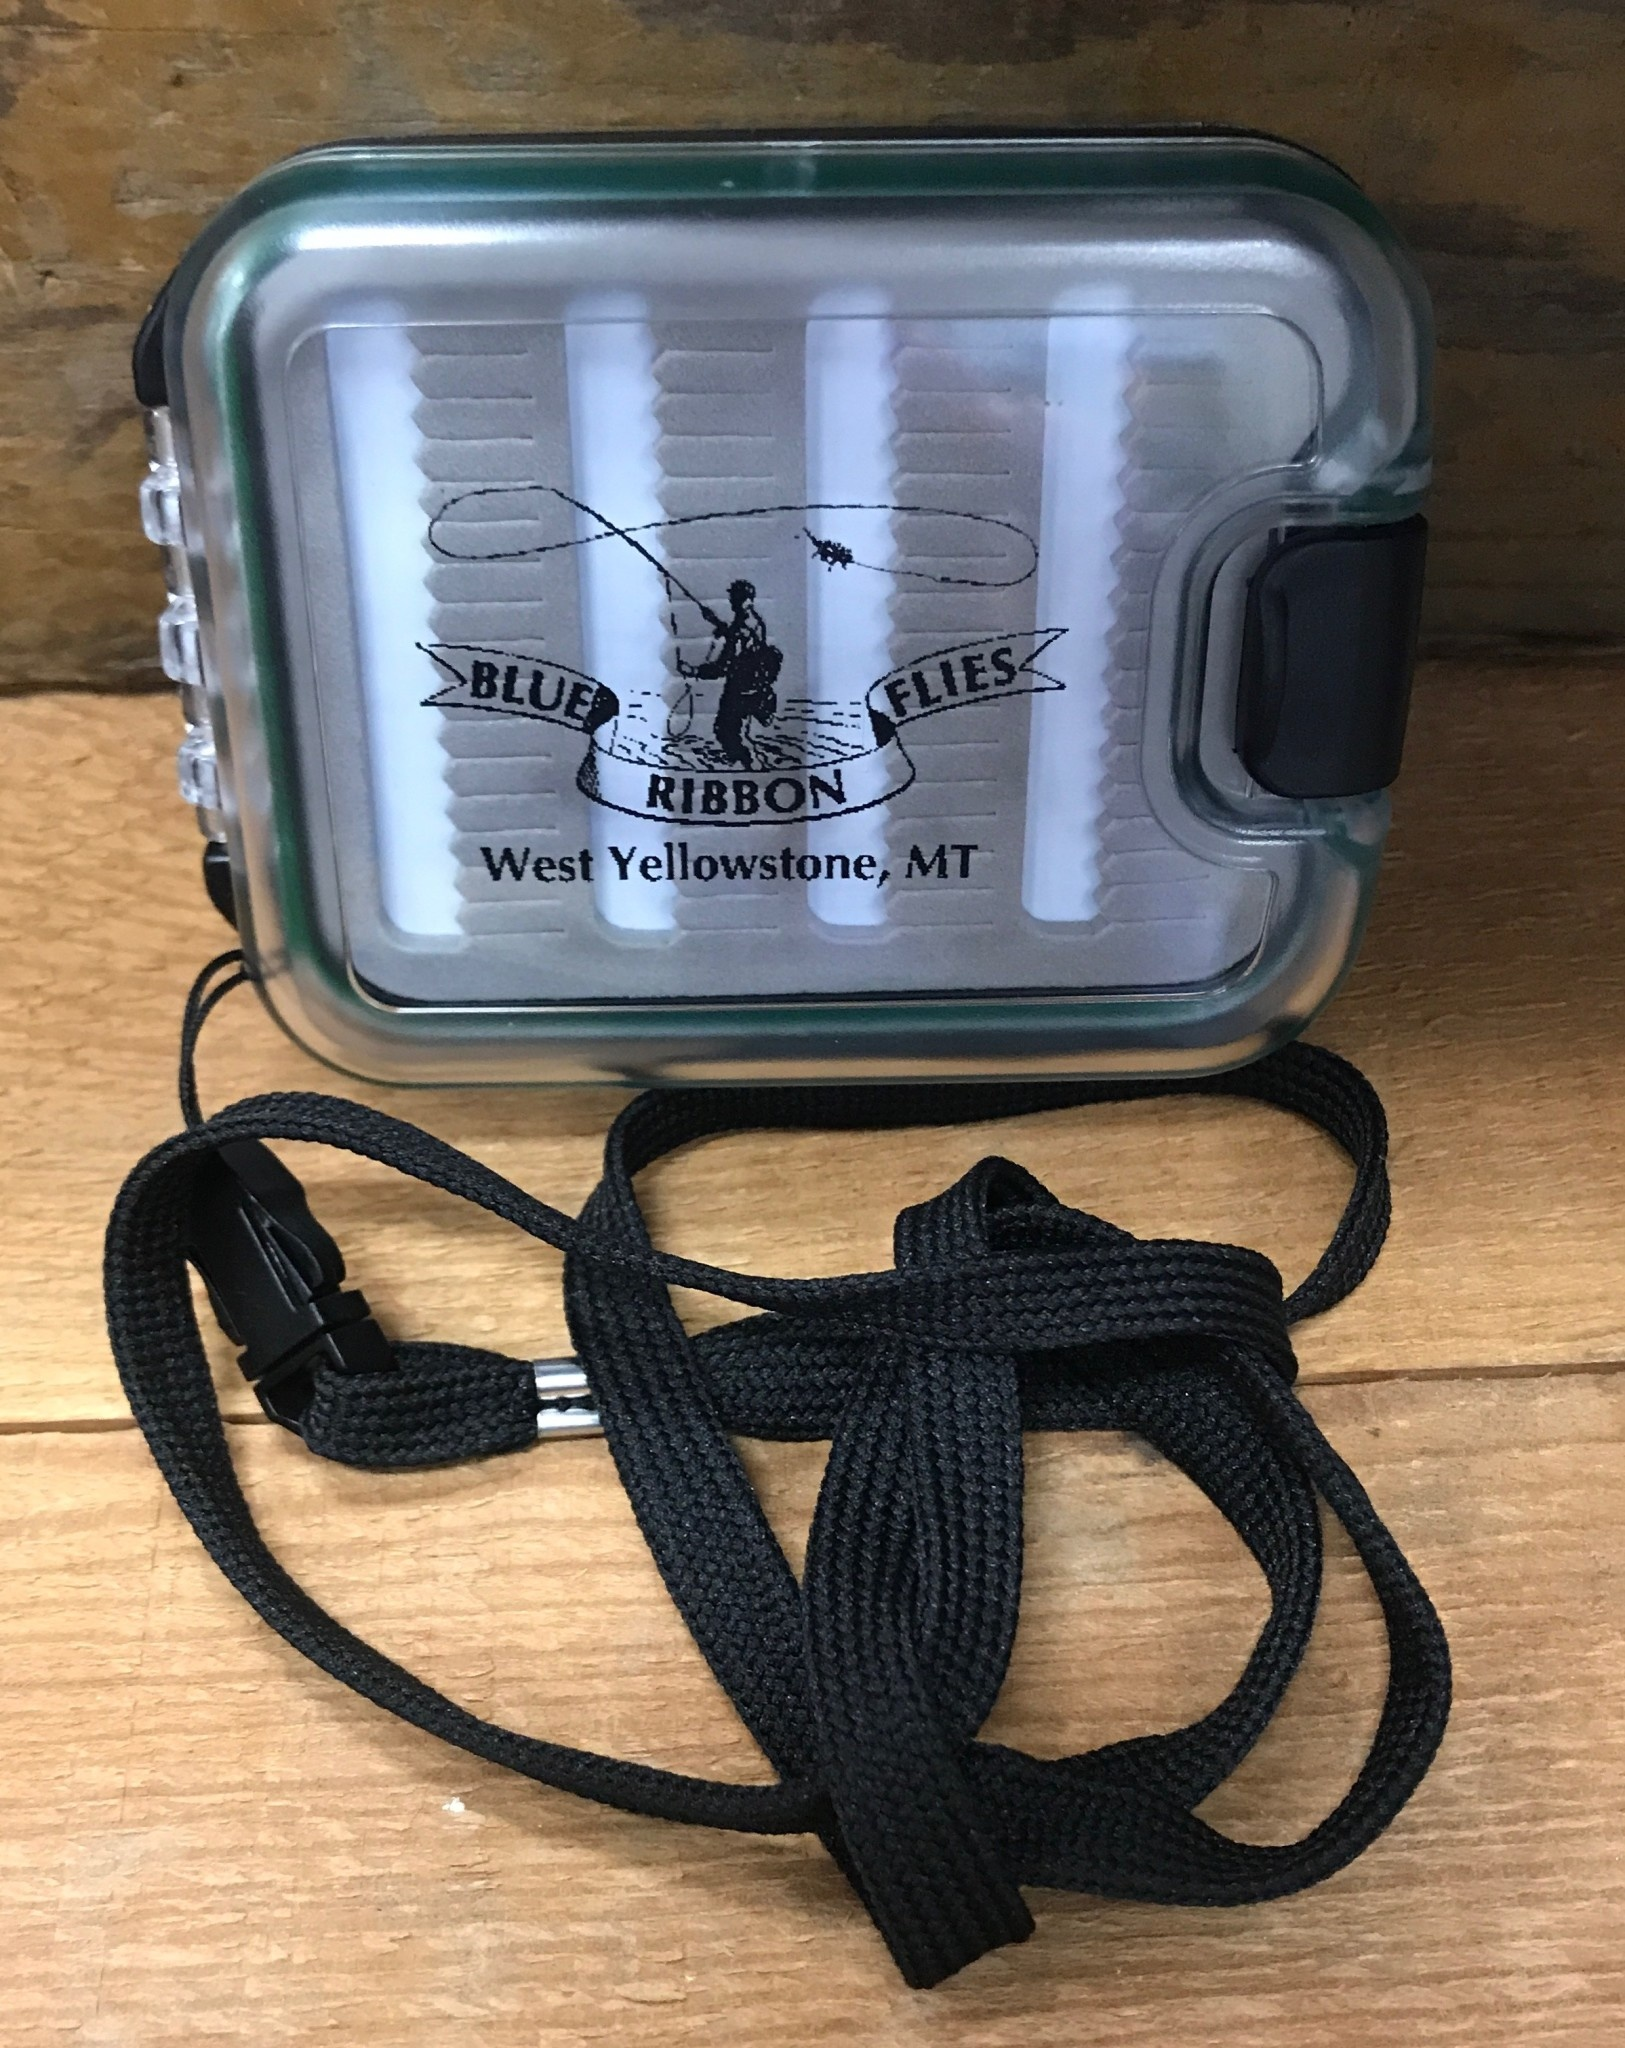 Blue Ribbon Waterproof Fly Boxes Extra Small w/Lanyard